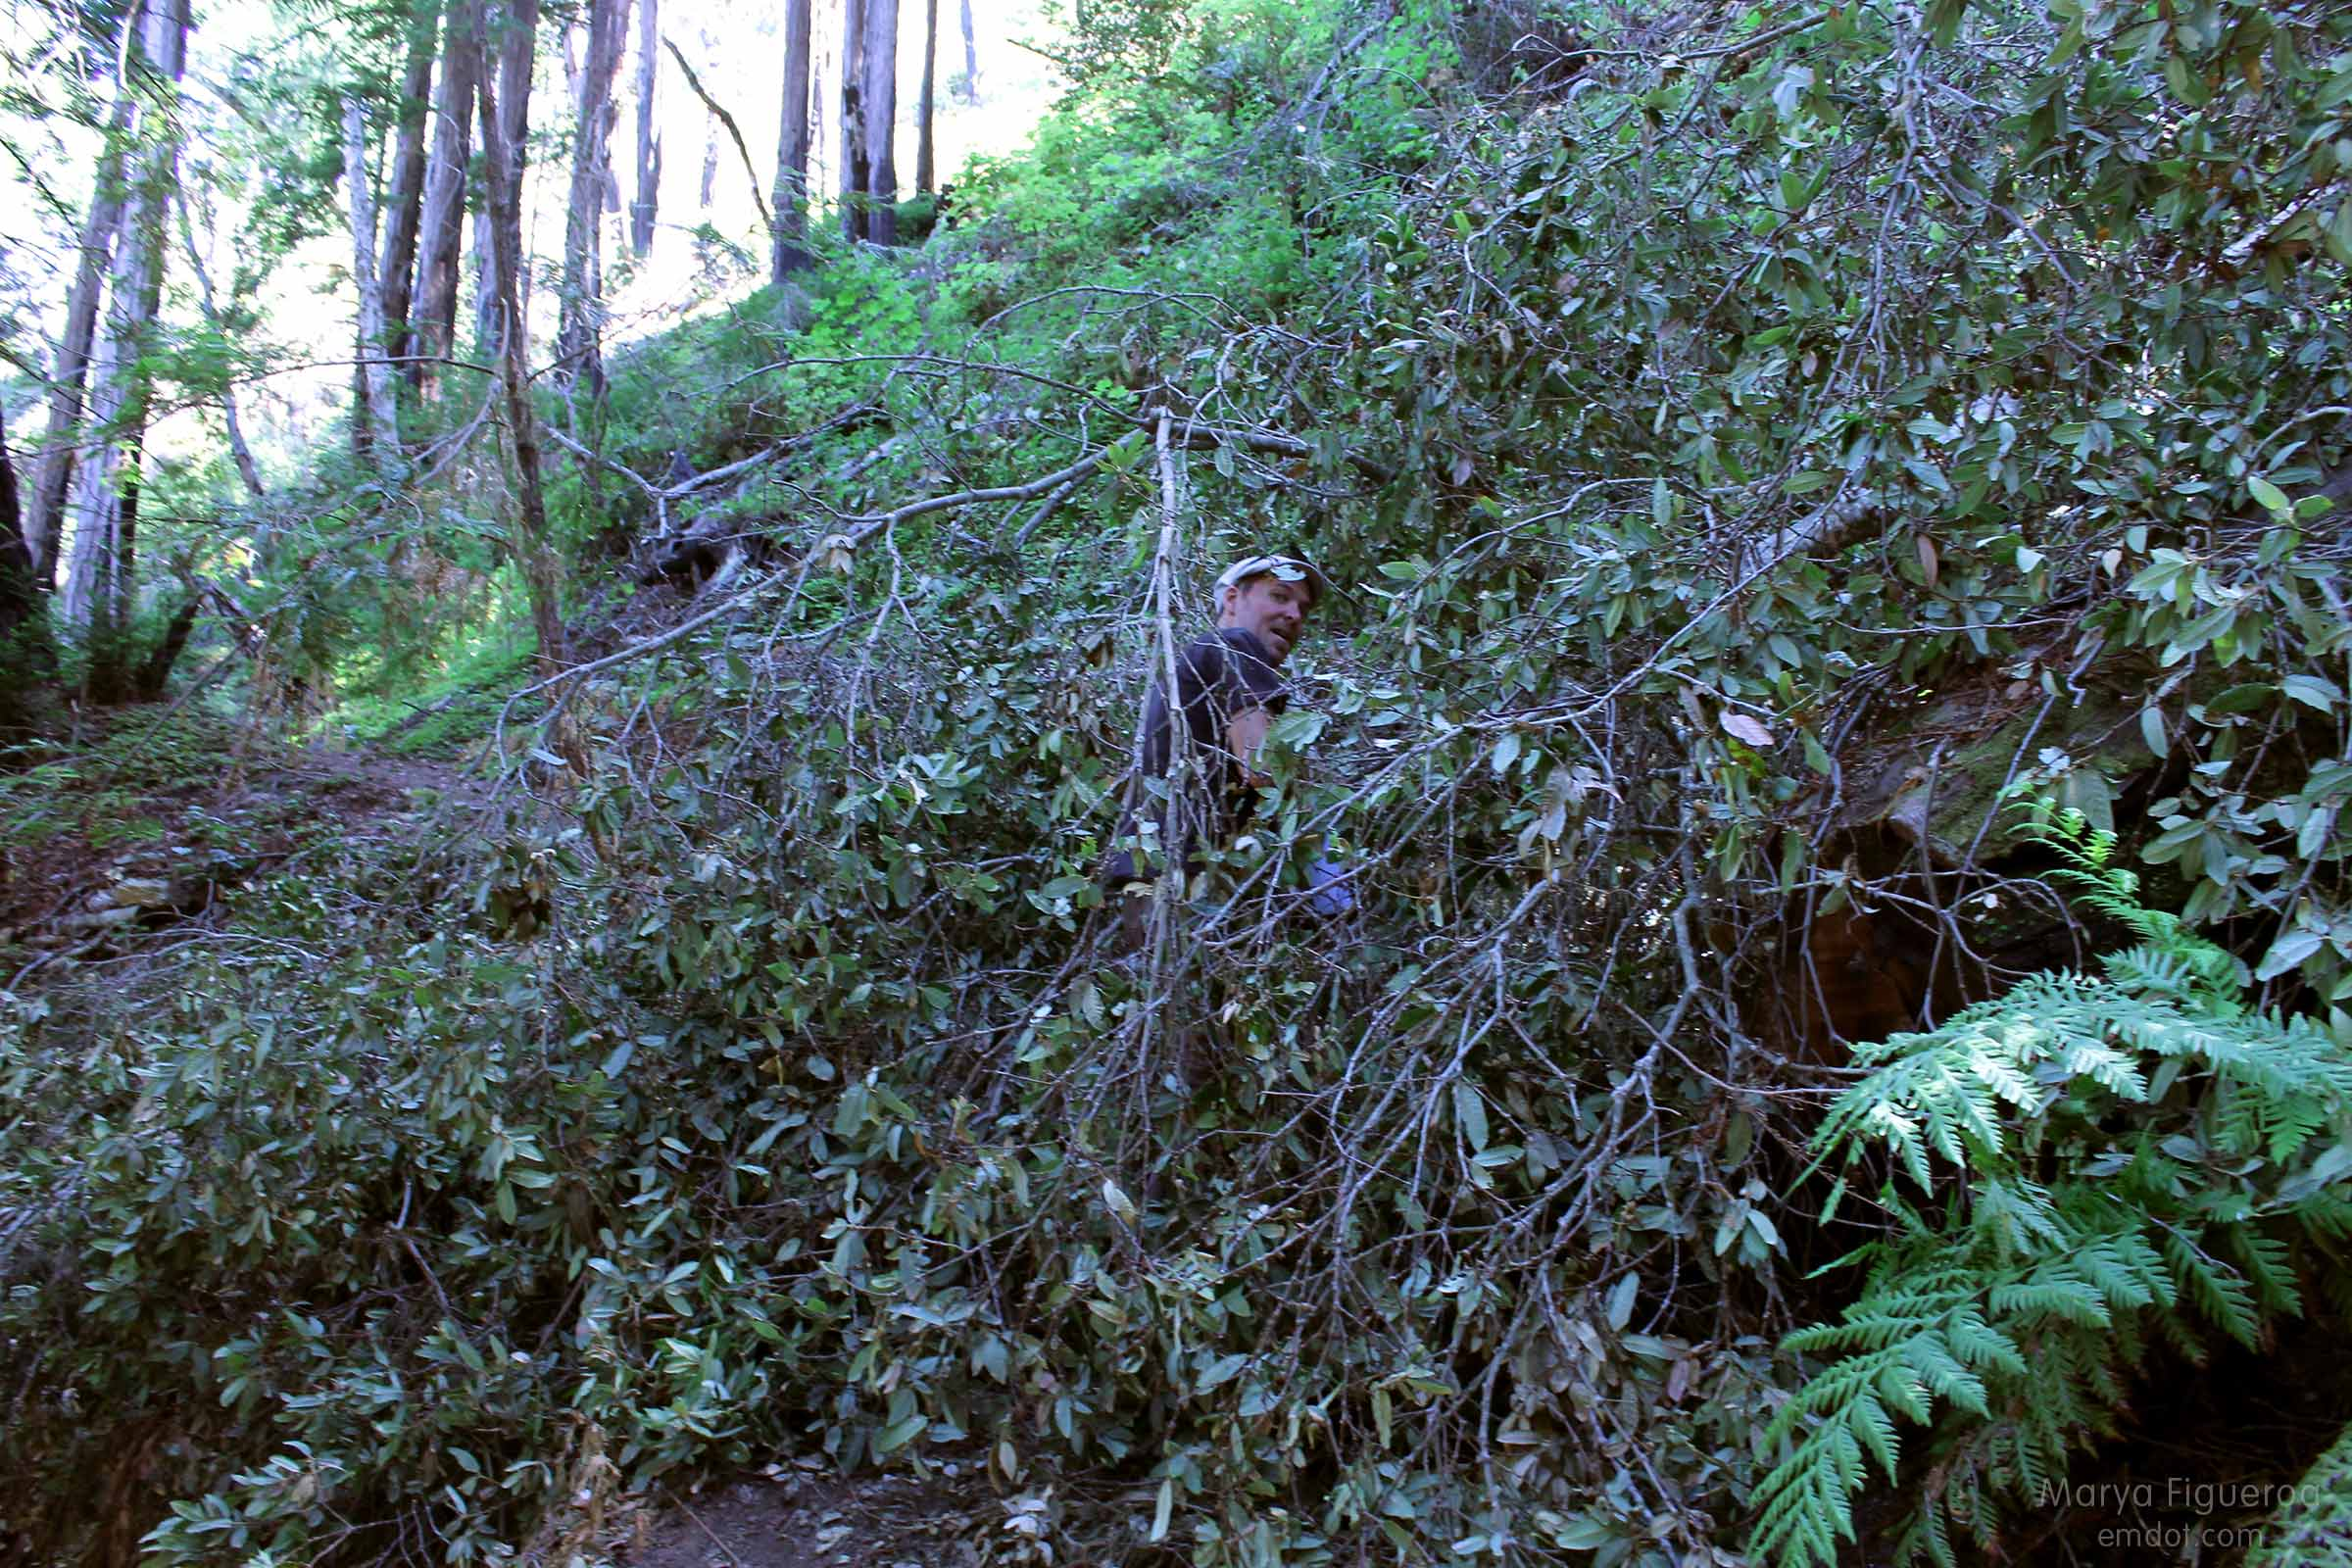 tanbark oak covering the trail, steve ducking and going under